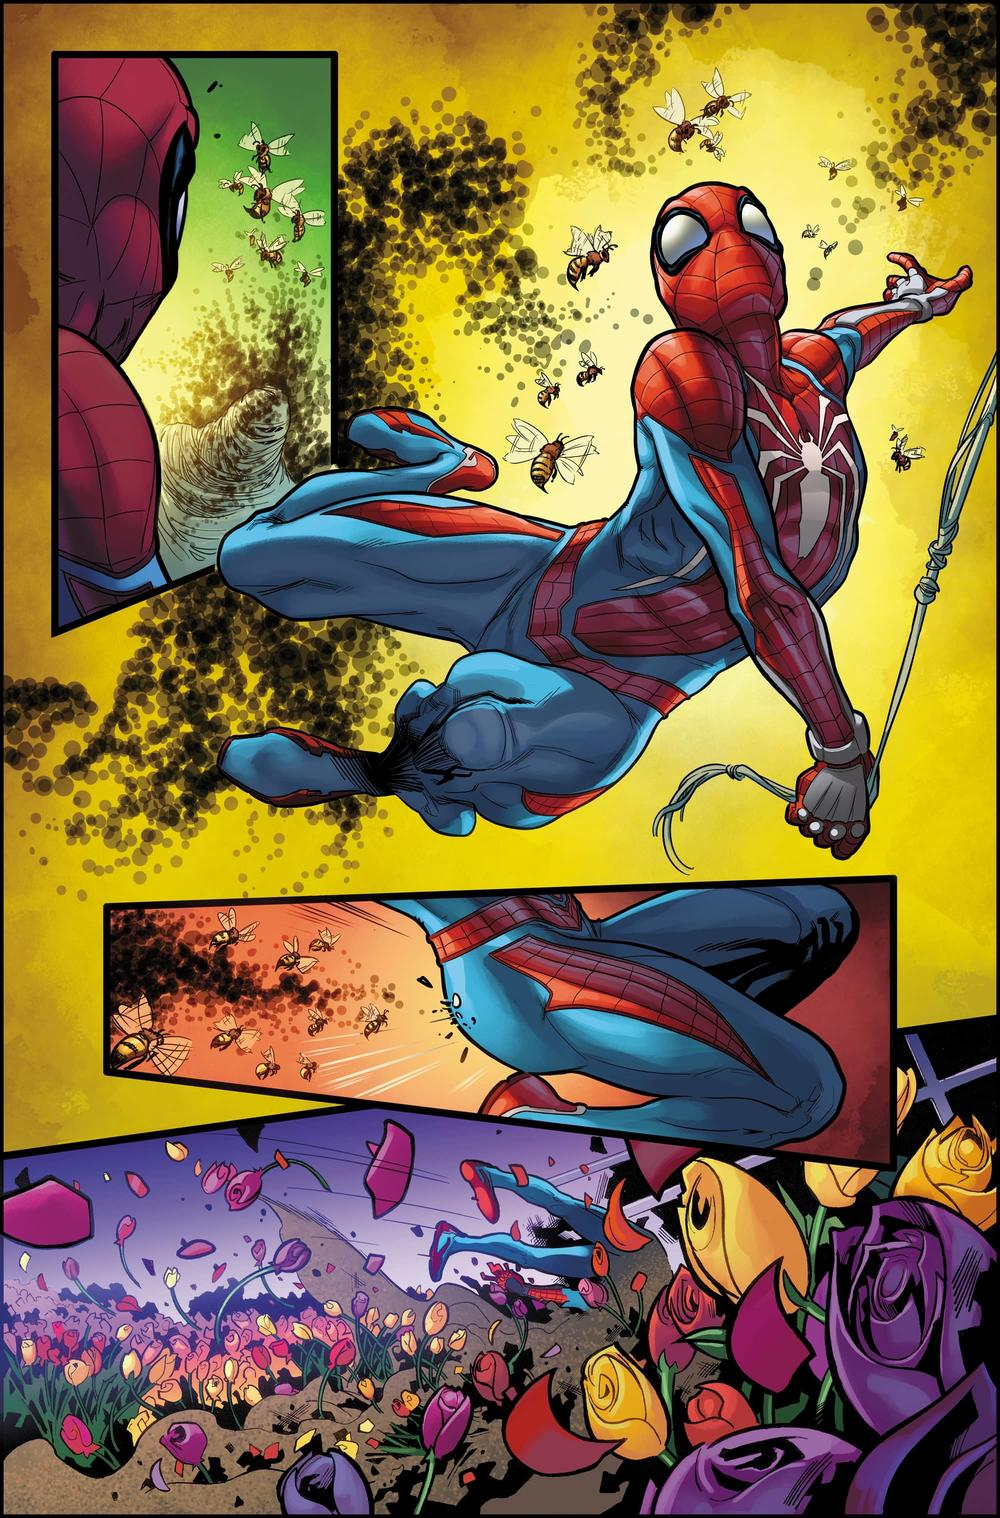 'Marvel's Spider-Man: Velocity' #1